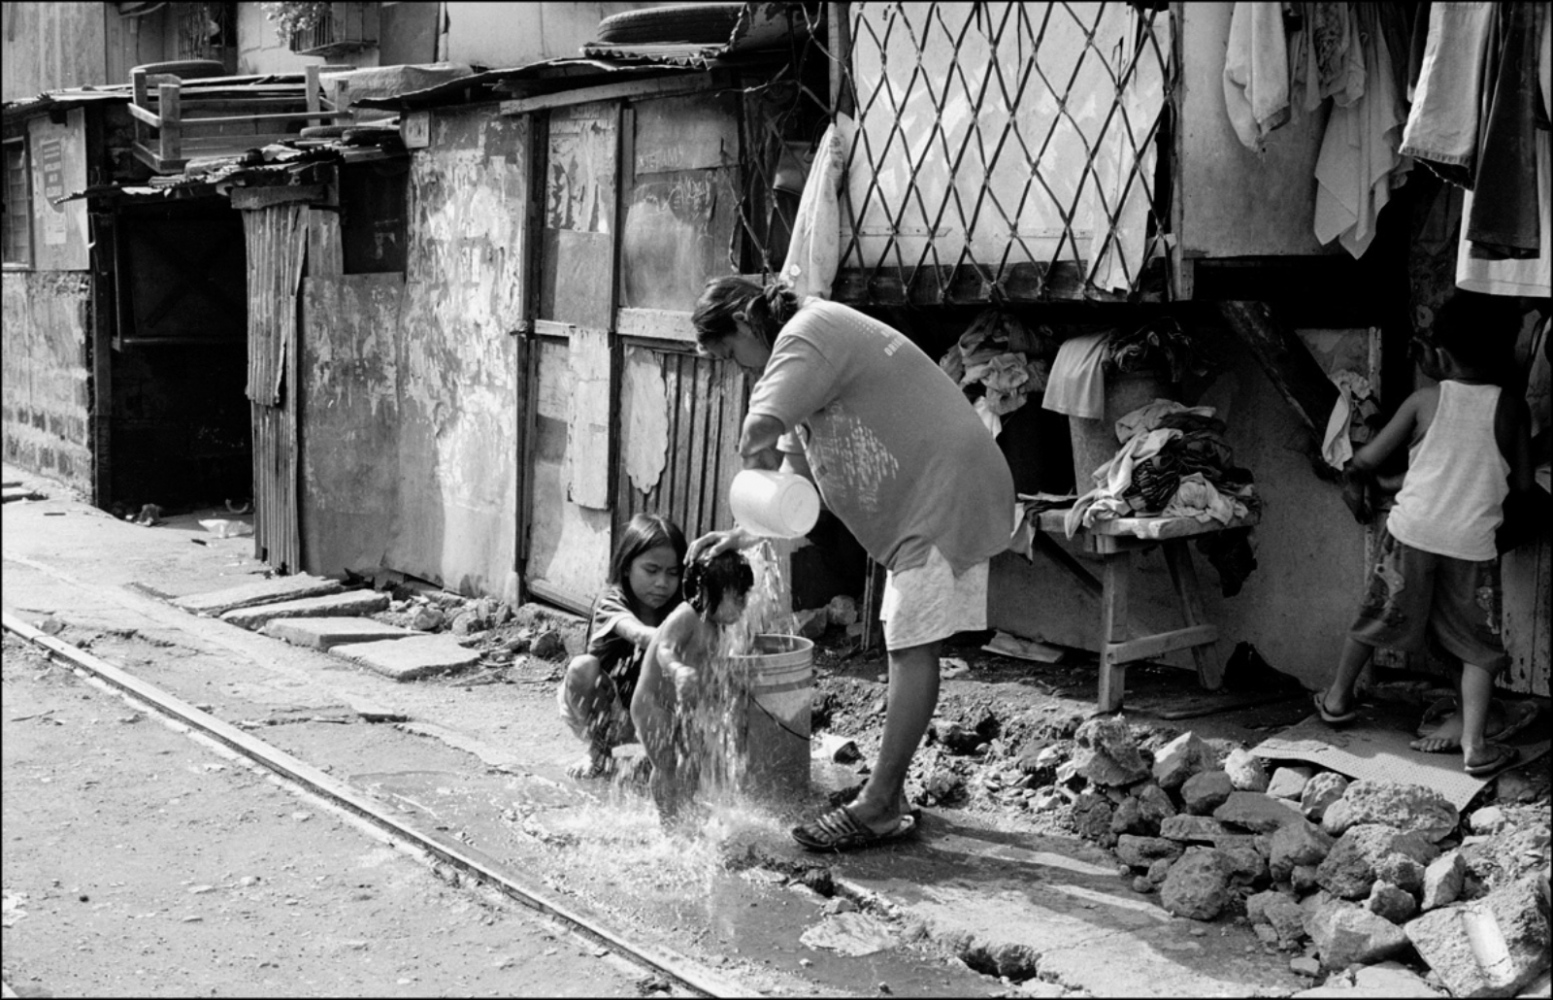 Baby Being Washed, Santa Mesa Station, Manila, Philippines, November 2005